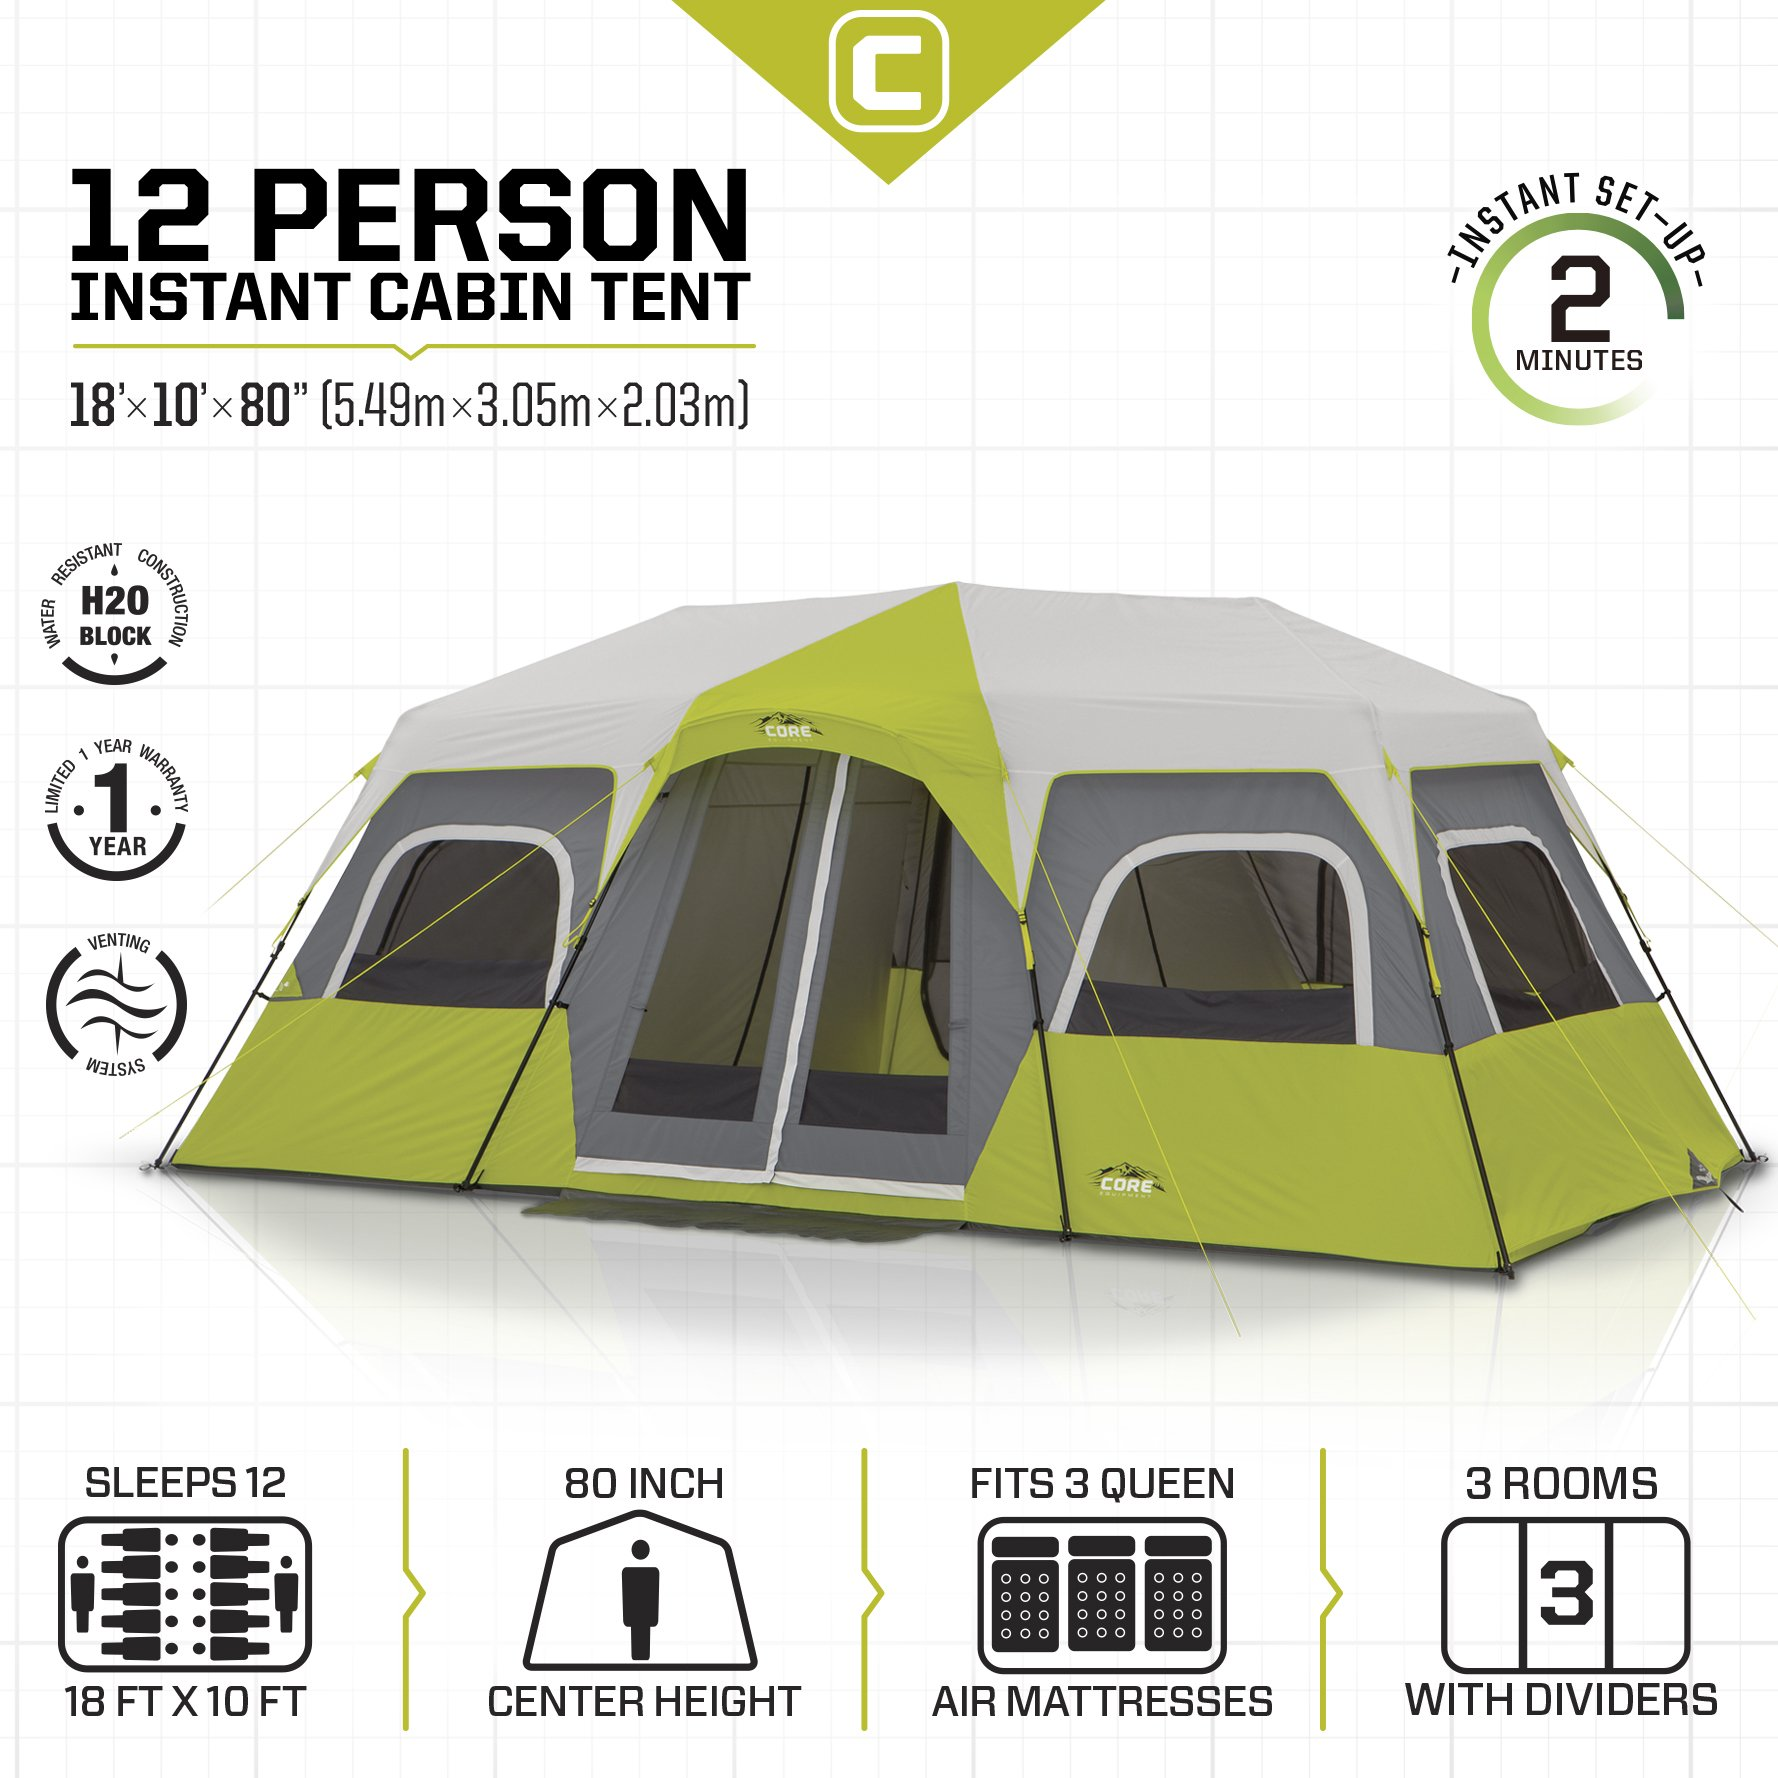 CORE 12 Person Instant Cabin Tent - 18' x 10' by CORE (Image #2)